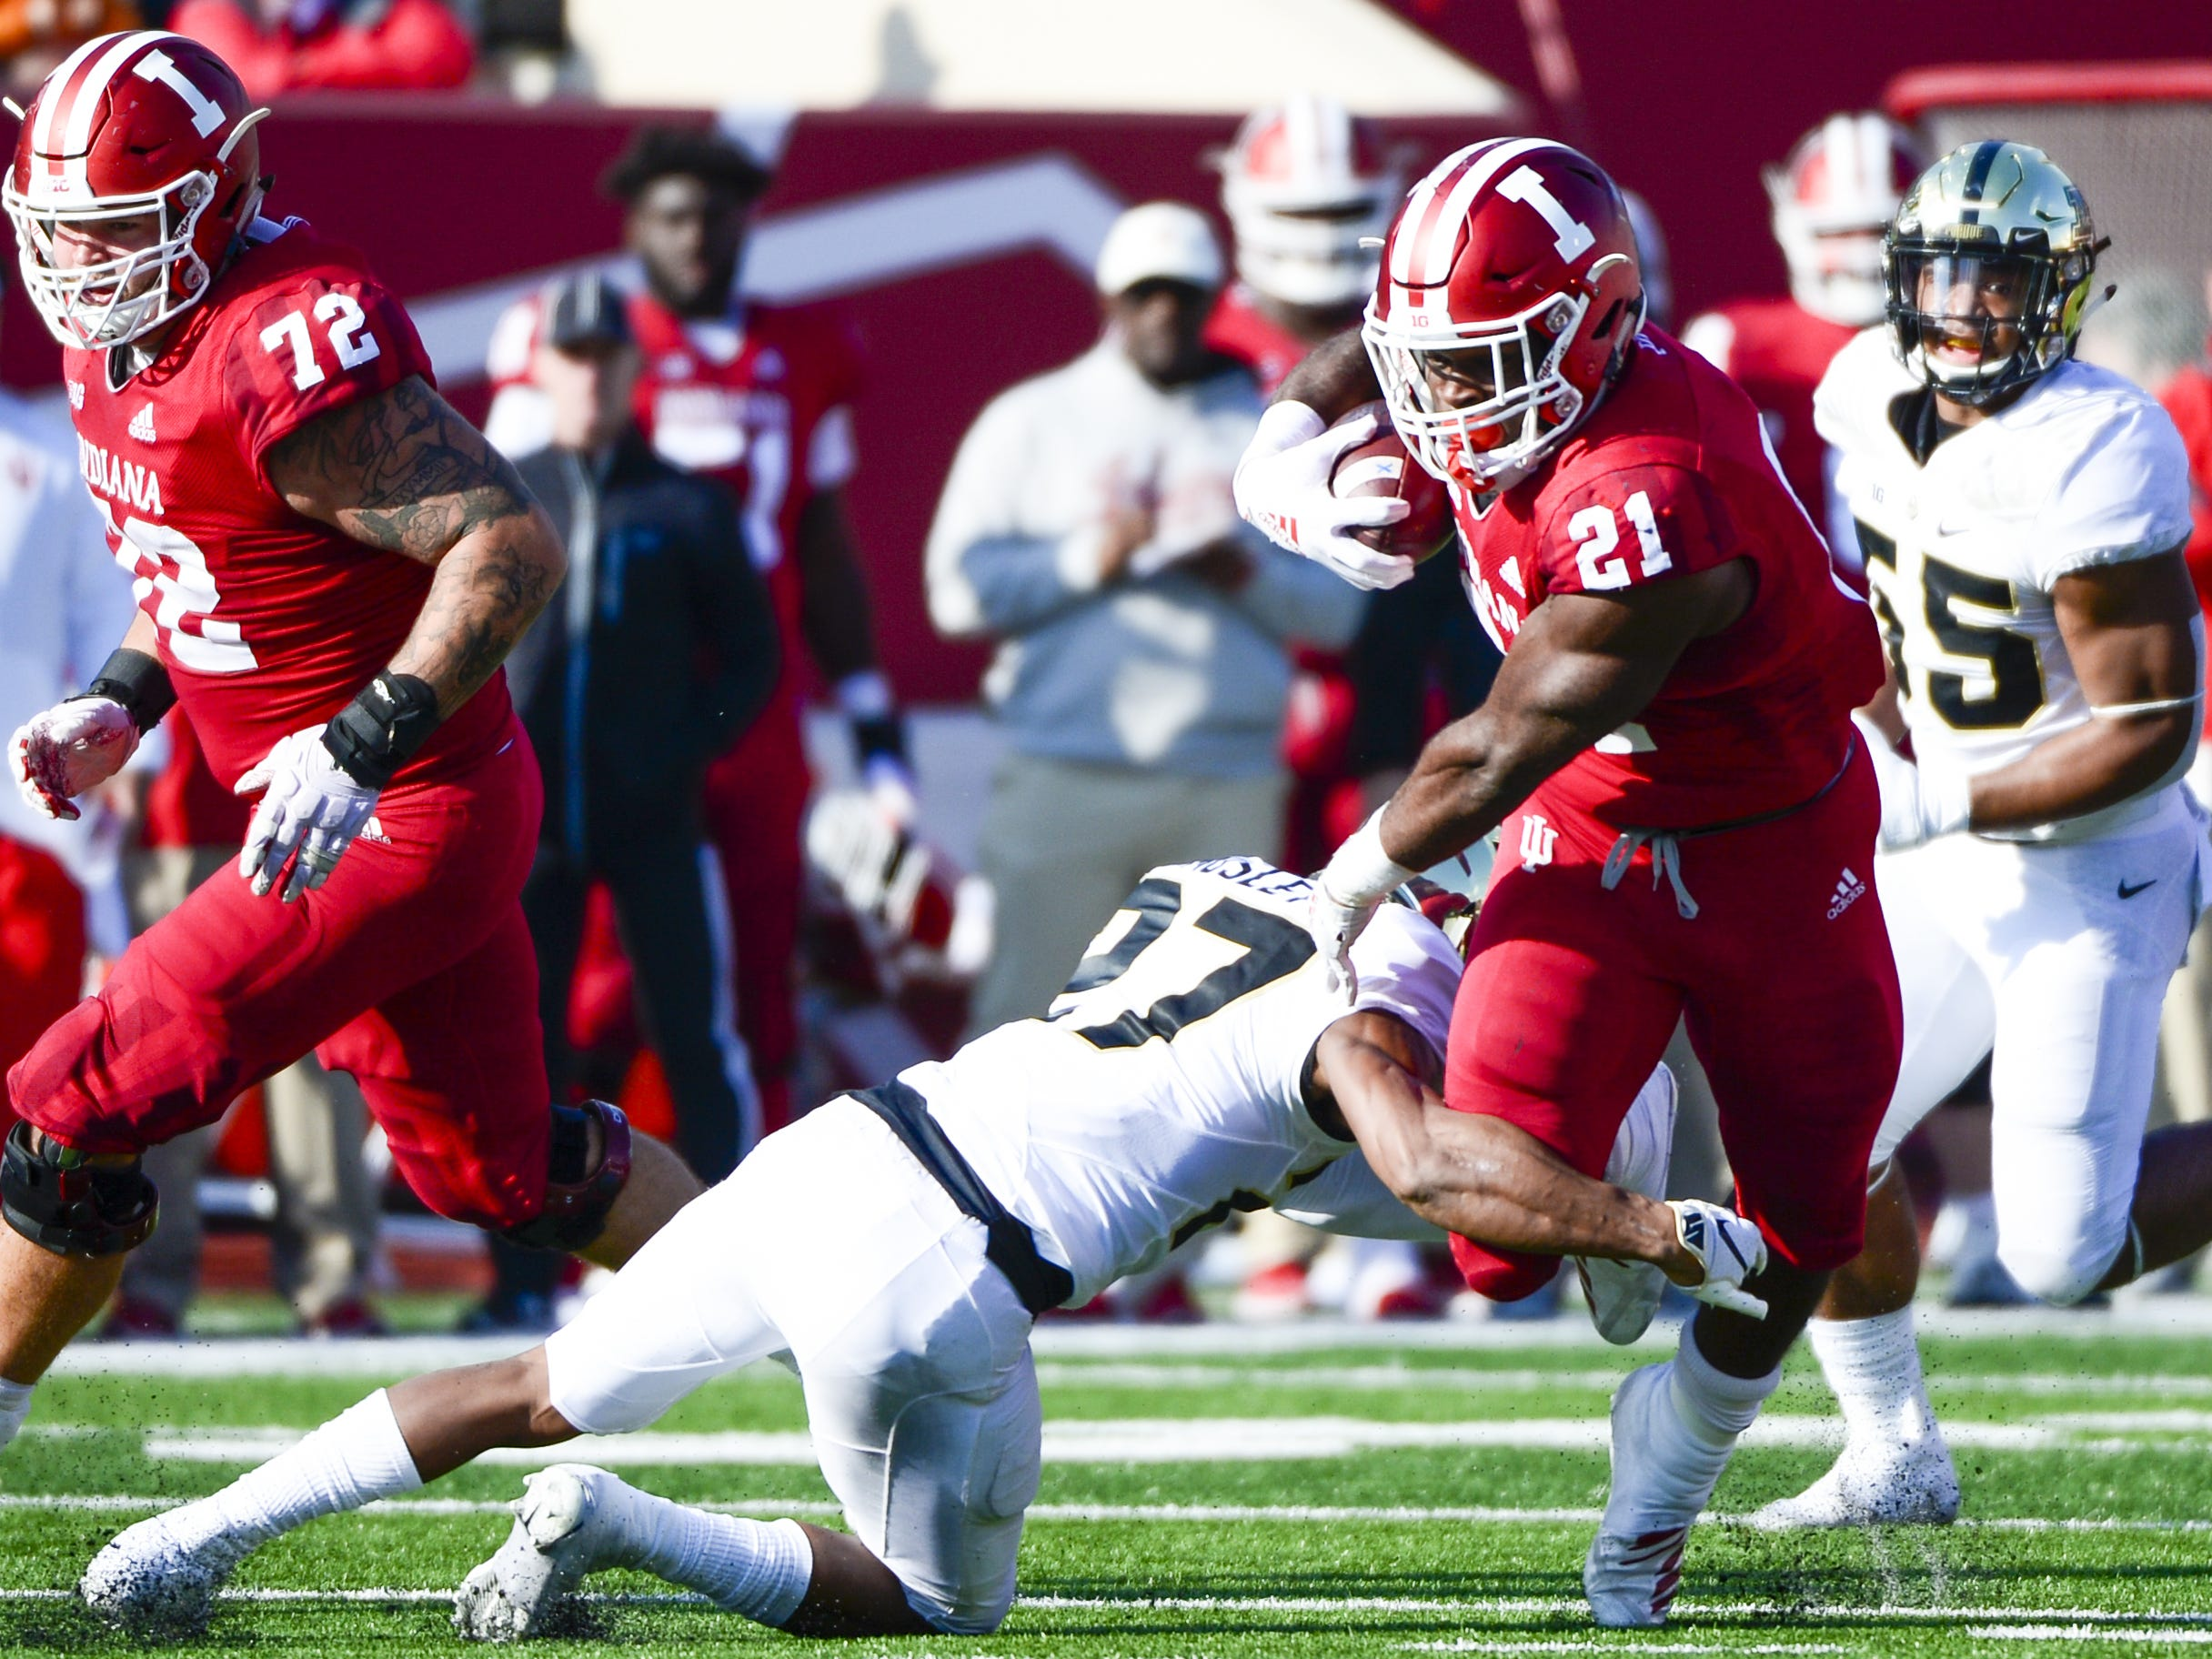 Indiana Hoosiers running back Stevie Scott (21) runs the ball during the game against Purdue at Memorial Stadium in Bloomington Ind., on Saturday, Nov. 24, 2018.